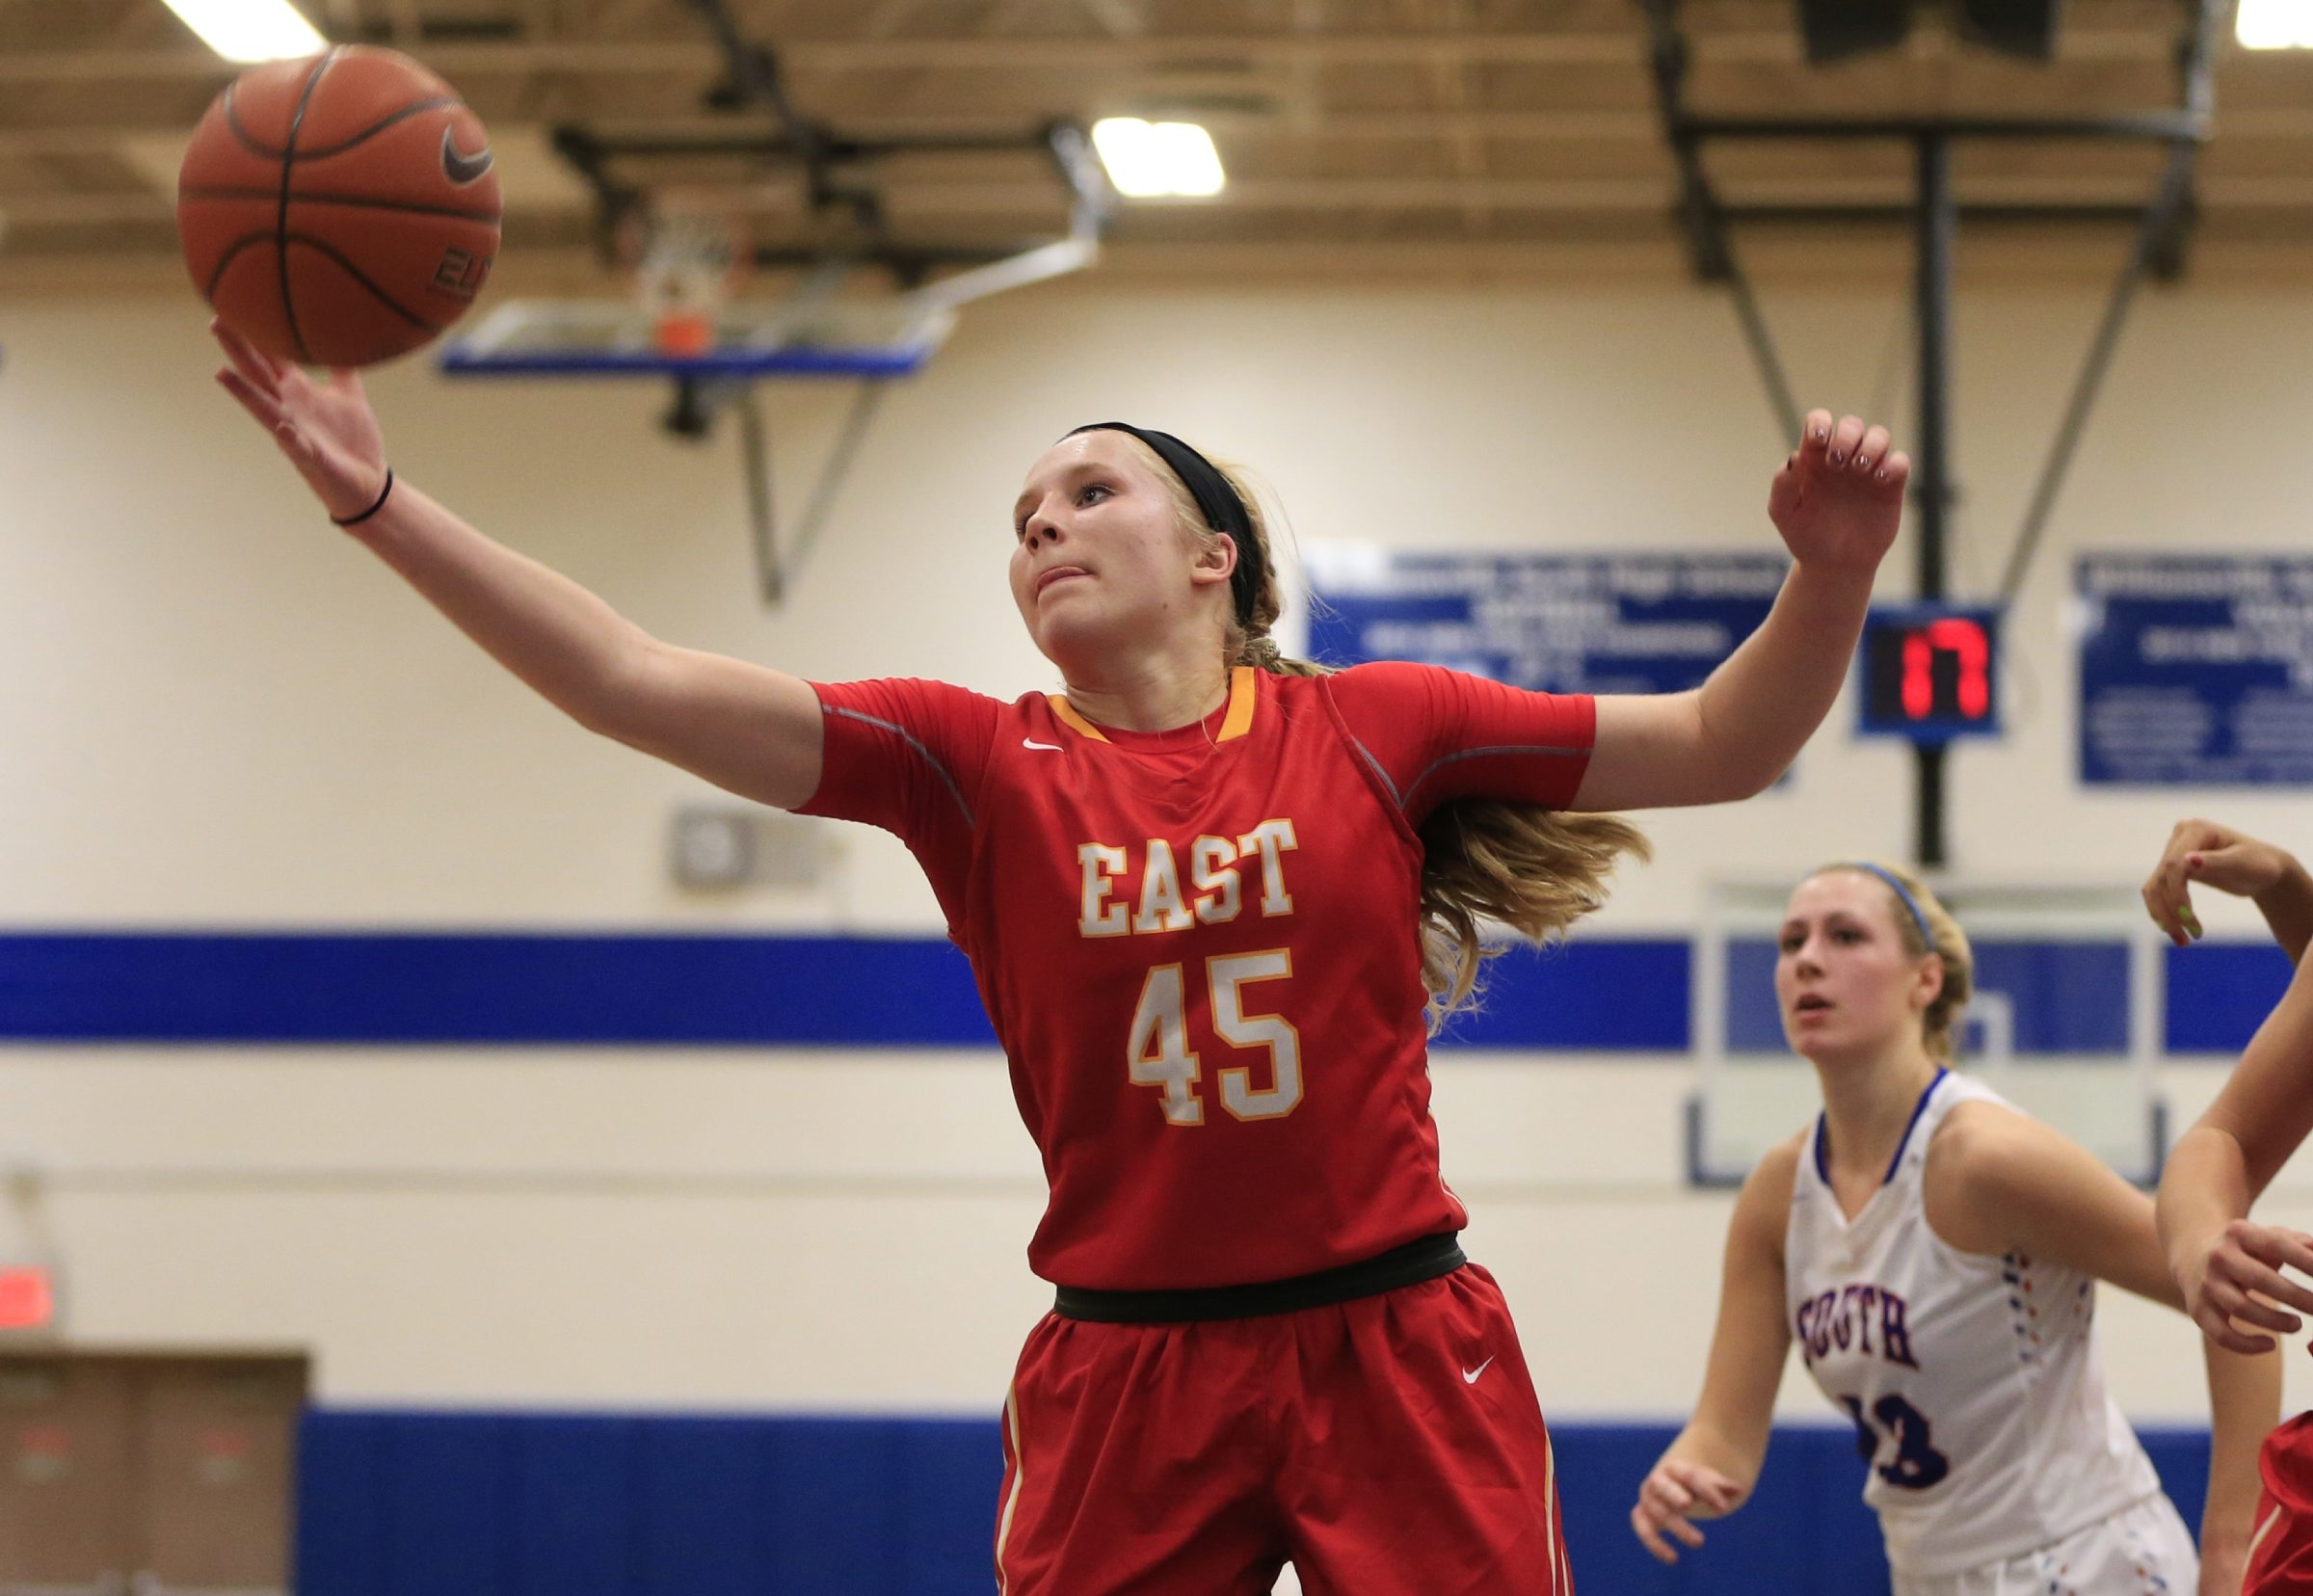 Erica Martinsen of Williamsville East takes down a rebound against Williamsville South in Tuesday's ECIC II season opener.